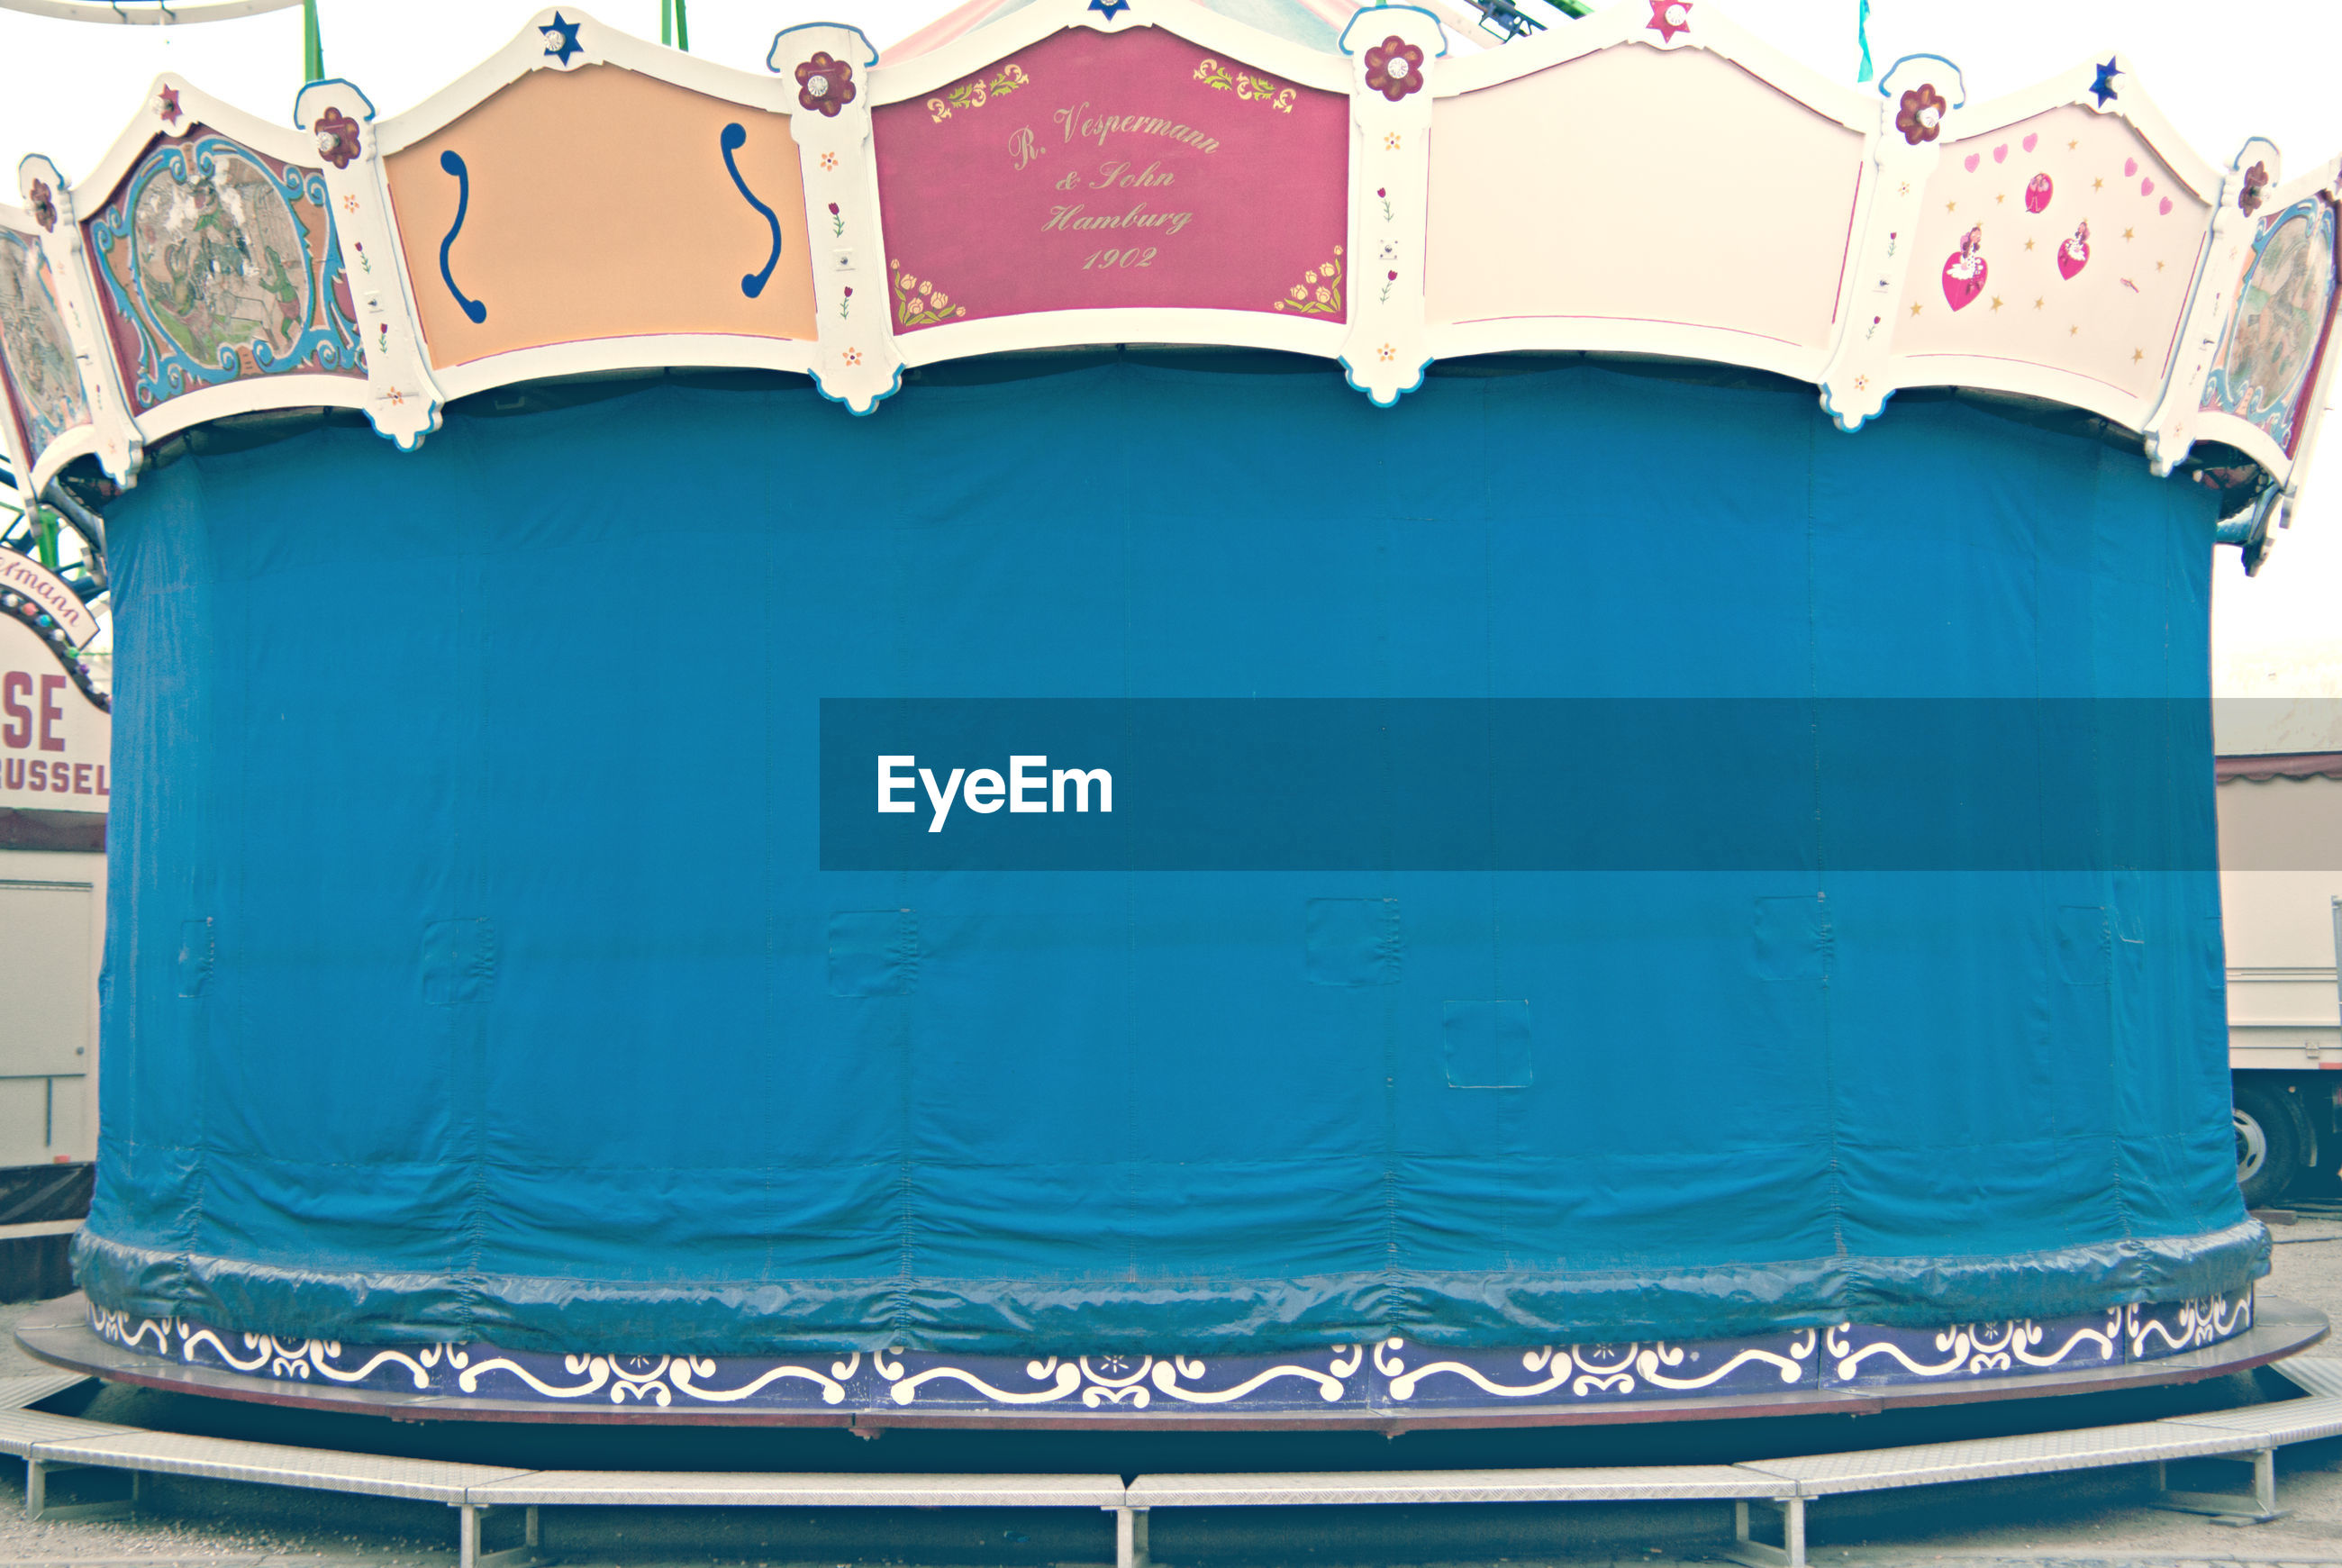 Ride covered with blue tarpaulin at amusement park